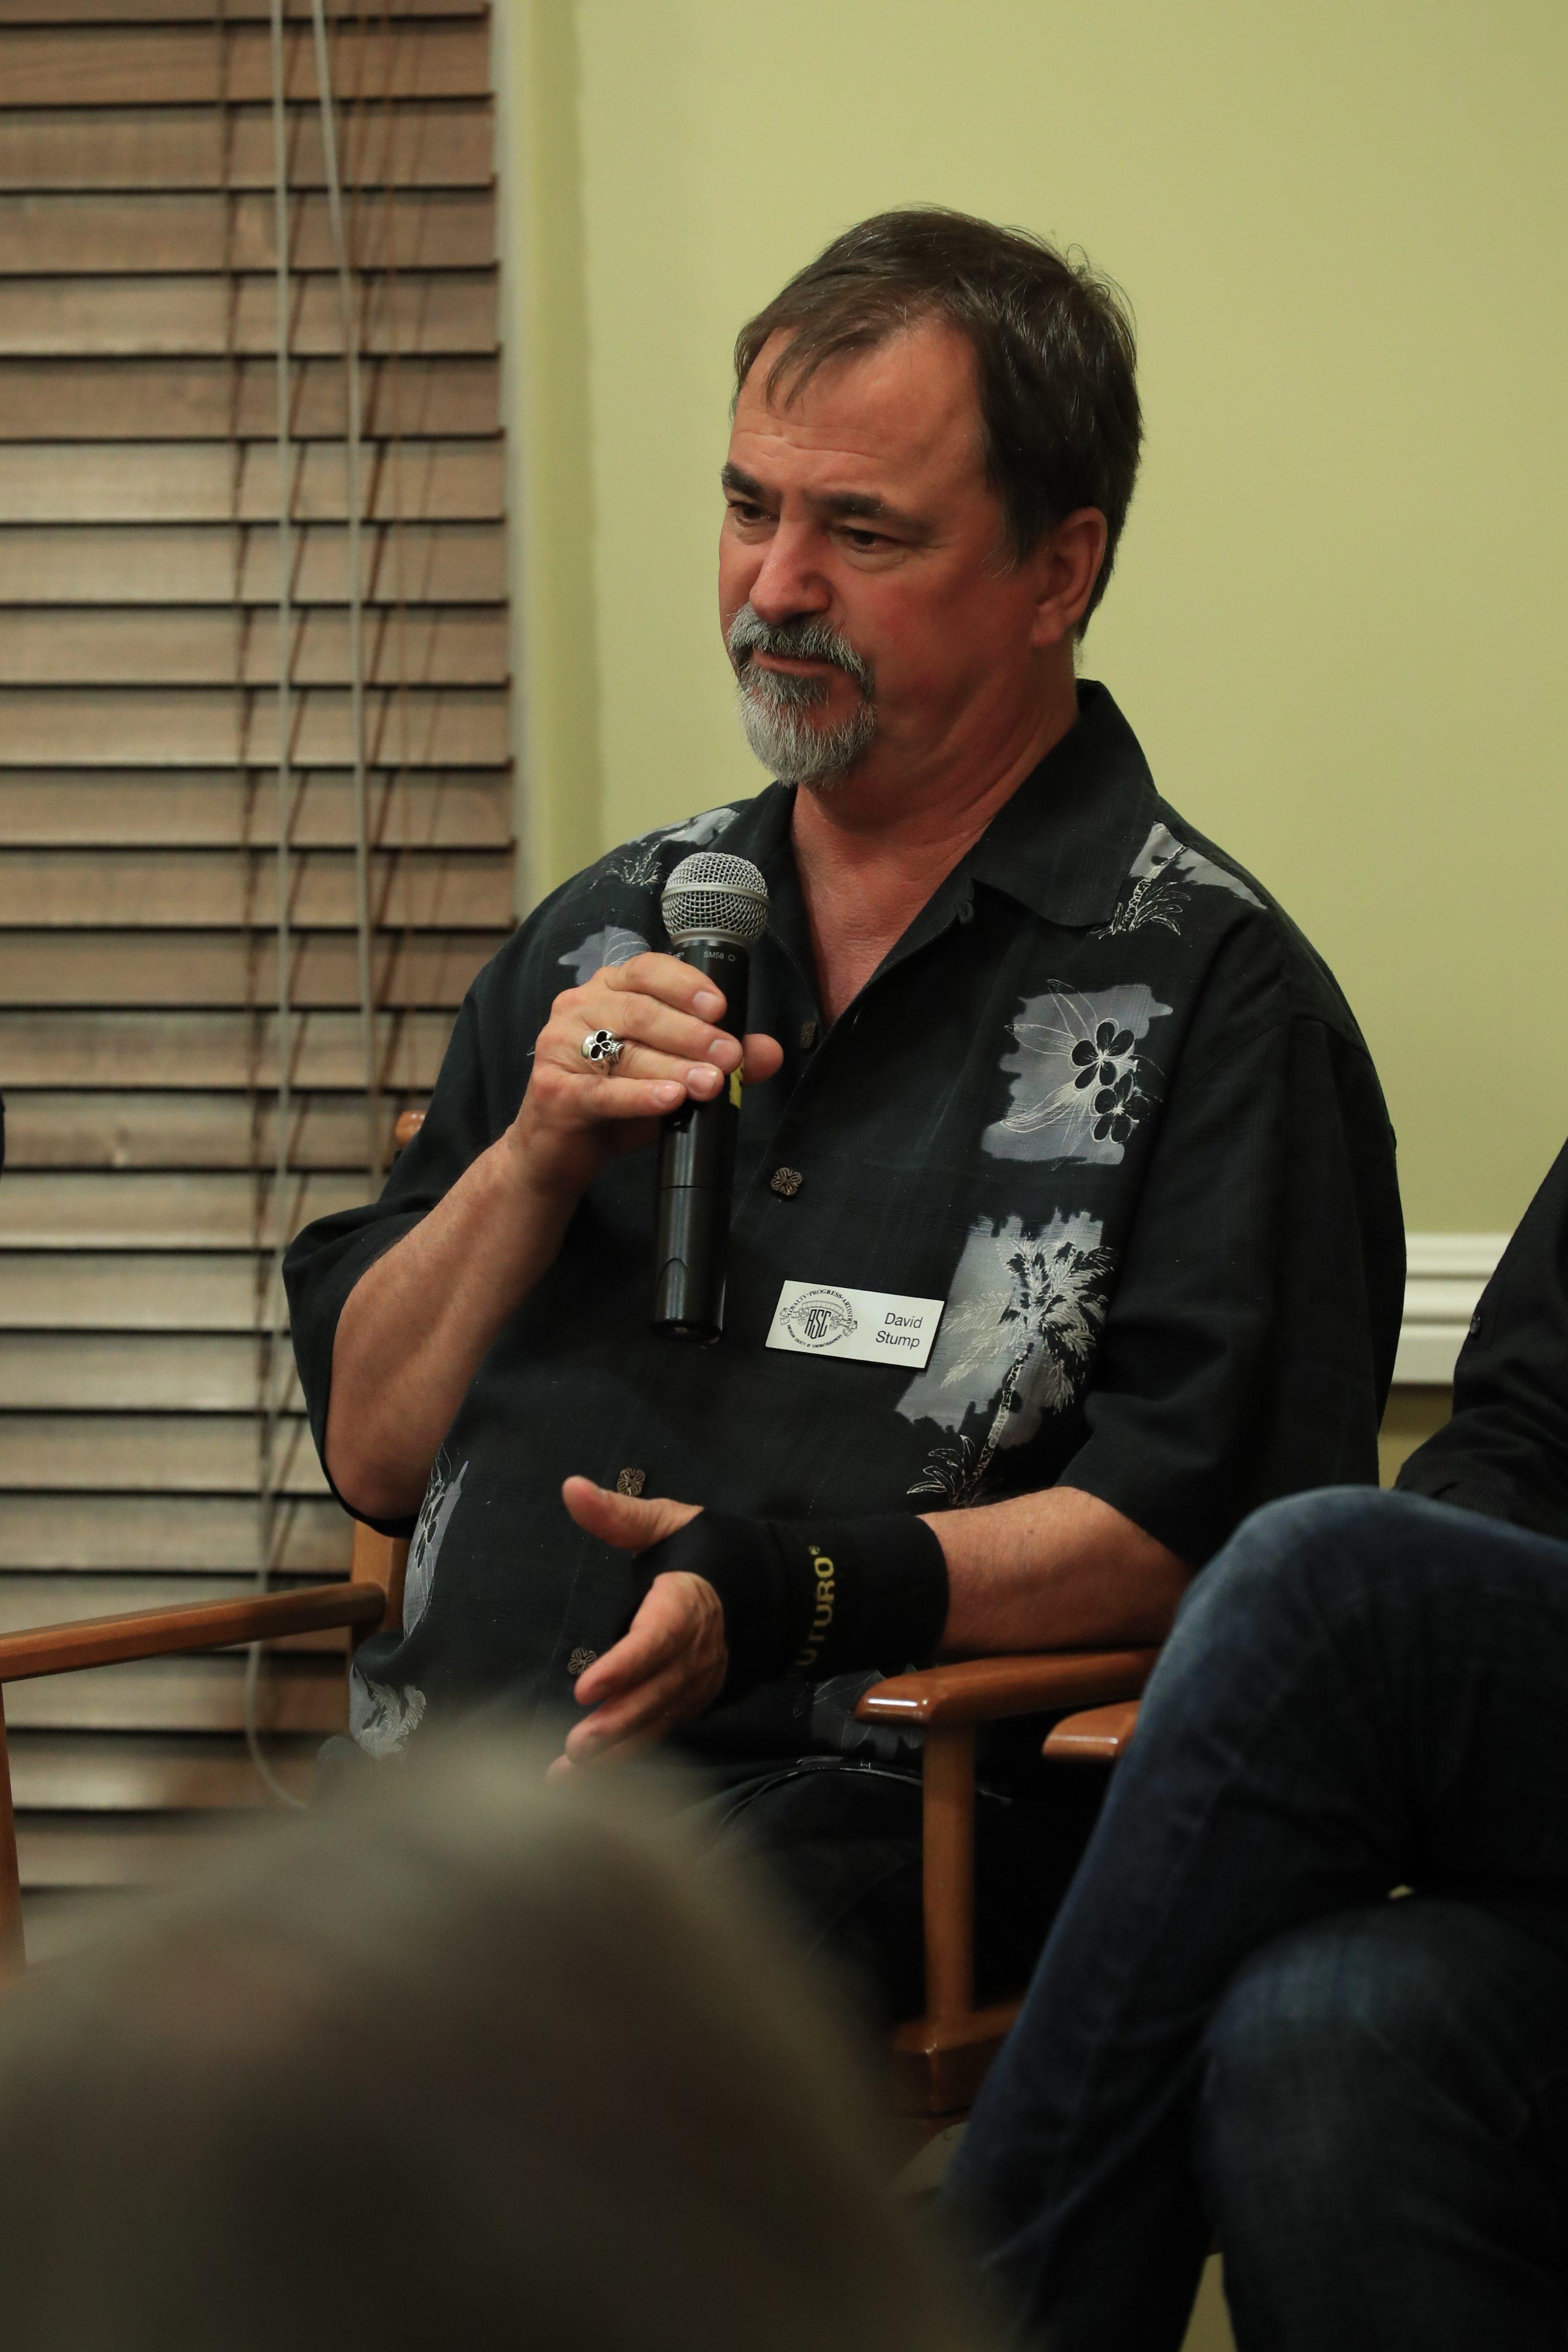 David Stump, ASC at the ICS 2016 VR event. Photo by James Neihouse, ASC